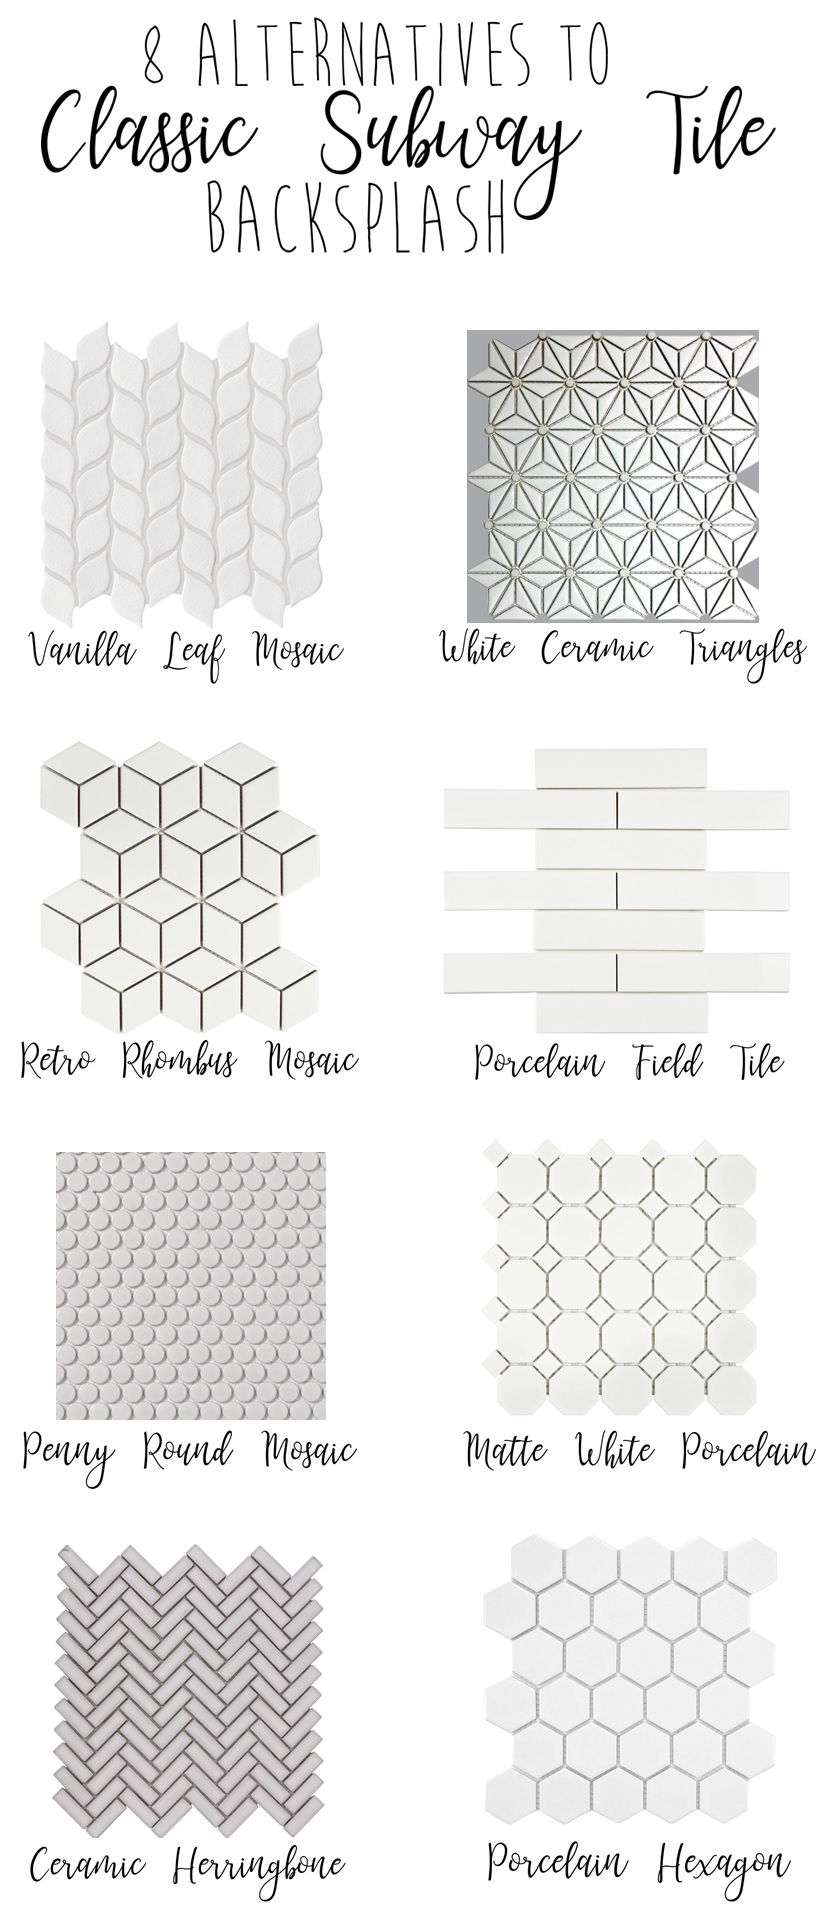 Vanilla Leaf Mosaic  |  White Ceramic Triangles  |  Retro Rhombus Mosaic  |  Porcelain Field Tile  |  Penny Round Mosaic  |  Matte White Porcelain  |  Ceramic Herringbone  |  Porcelain Hexagon